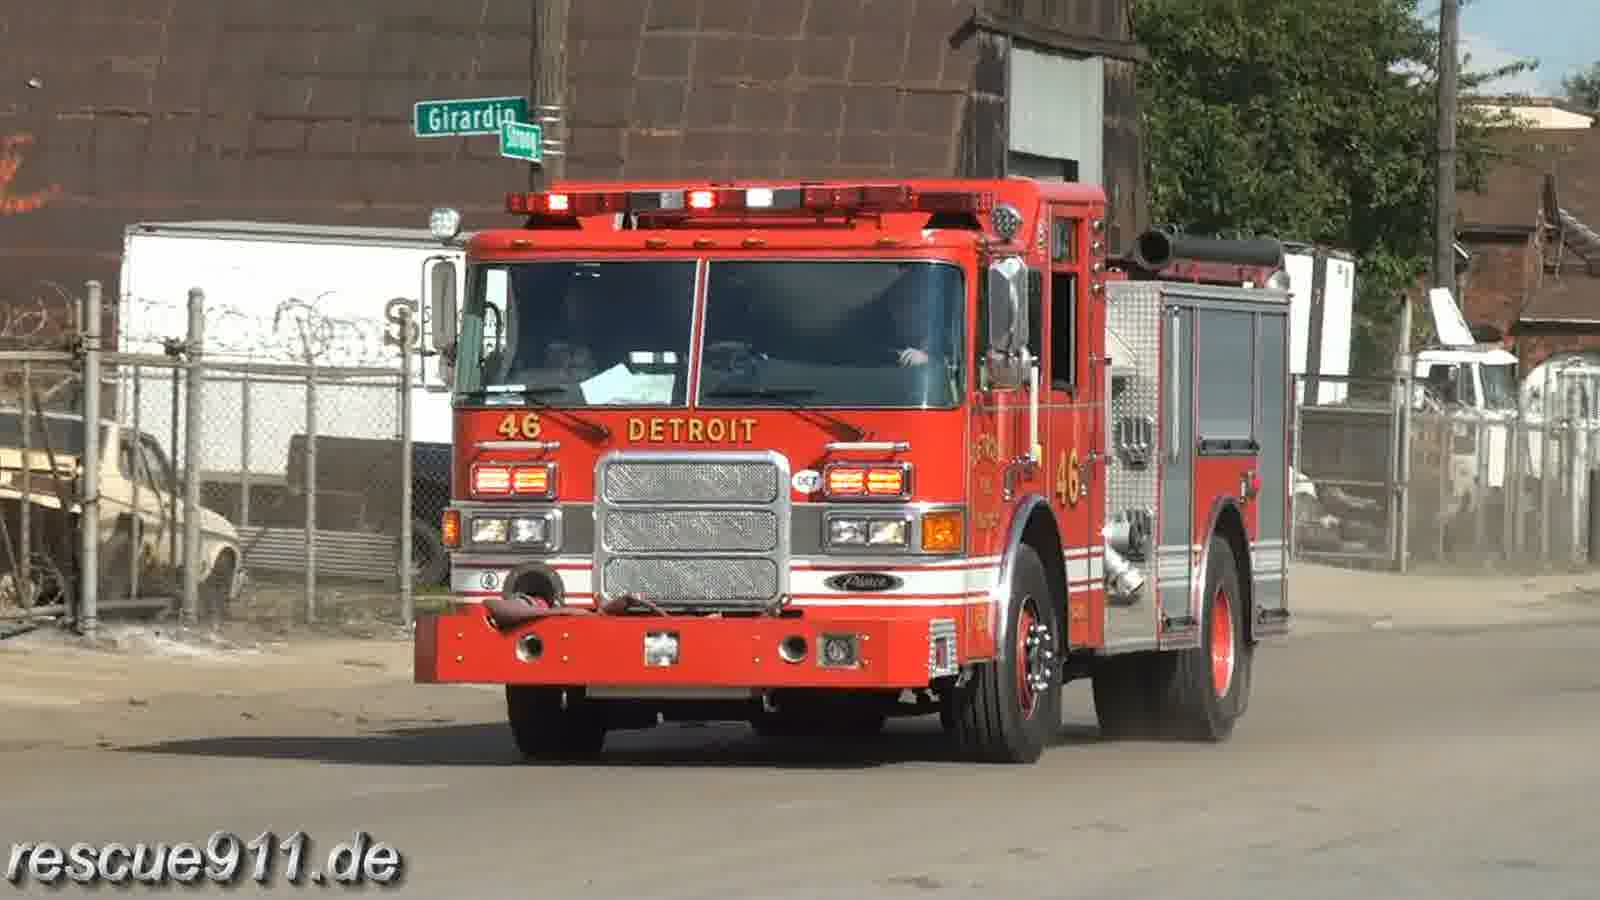 Engine 46 + Engine 41 Detroit Fire Department (stream)